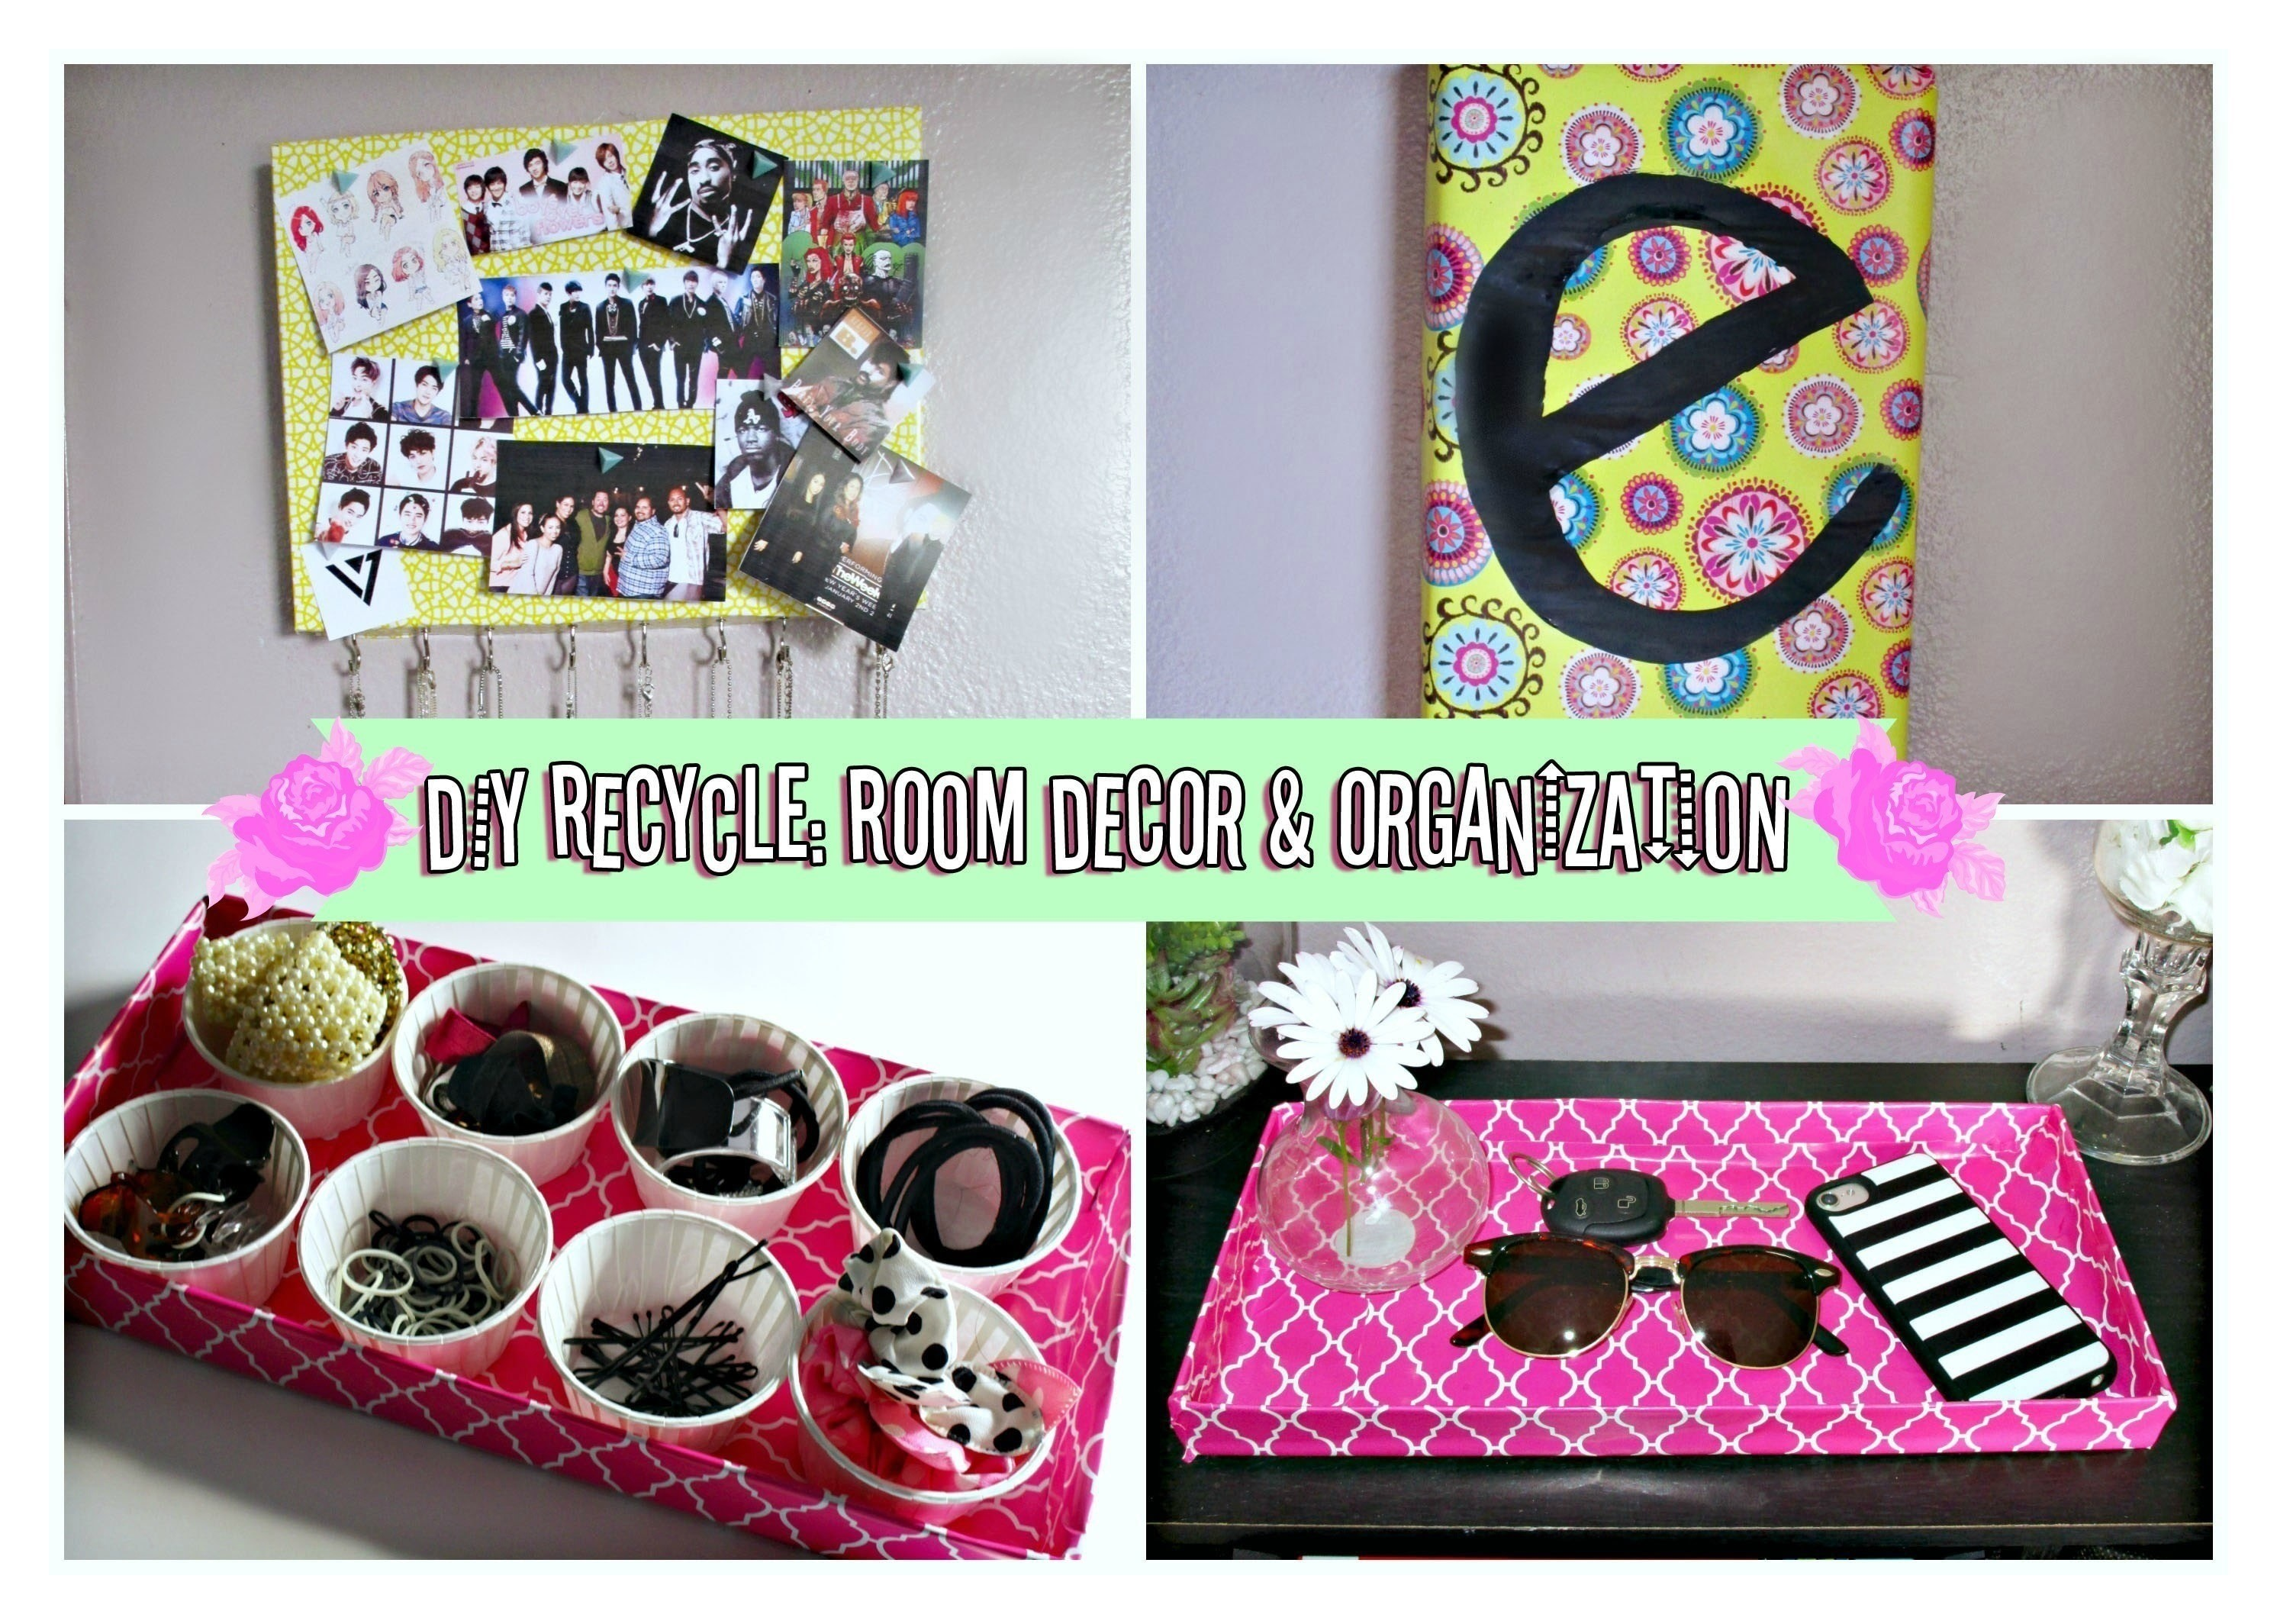 Diy Room Decor And Organization Ideas Diy Room Decor Organization Ideas For Spring Recycling